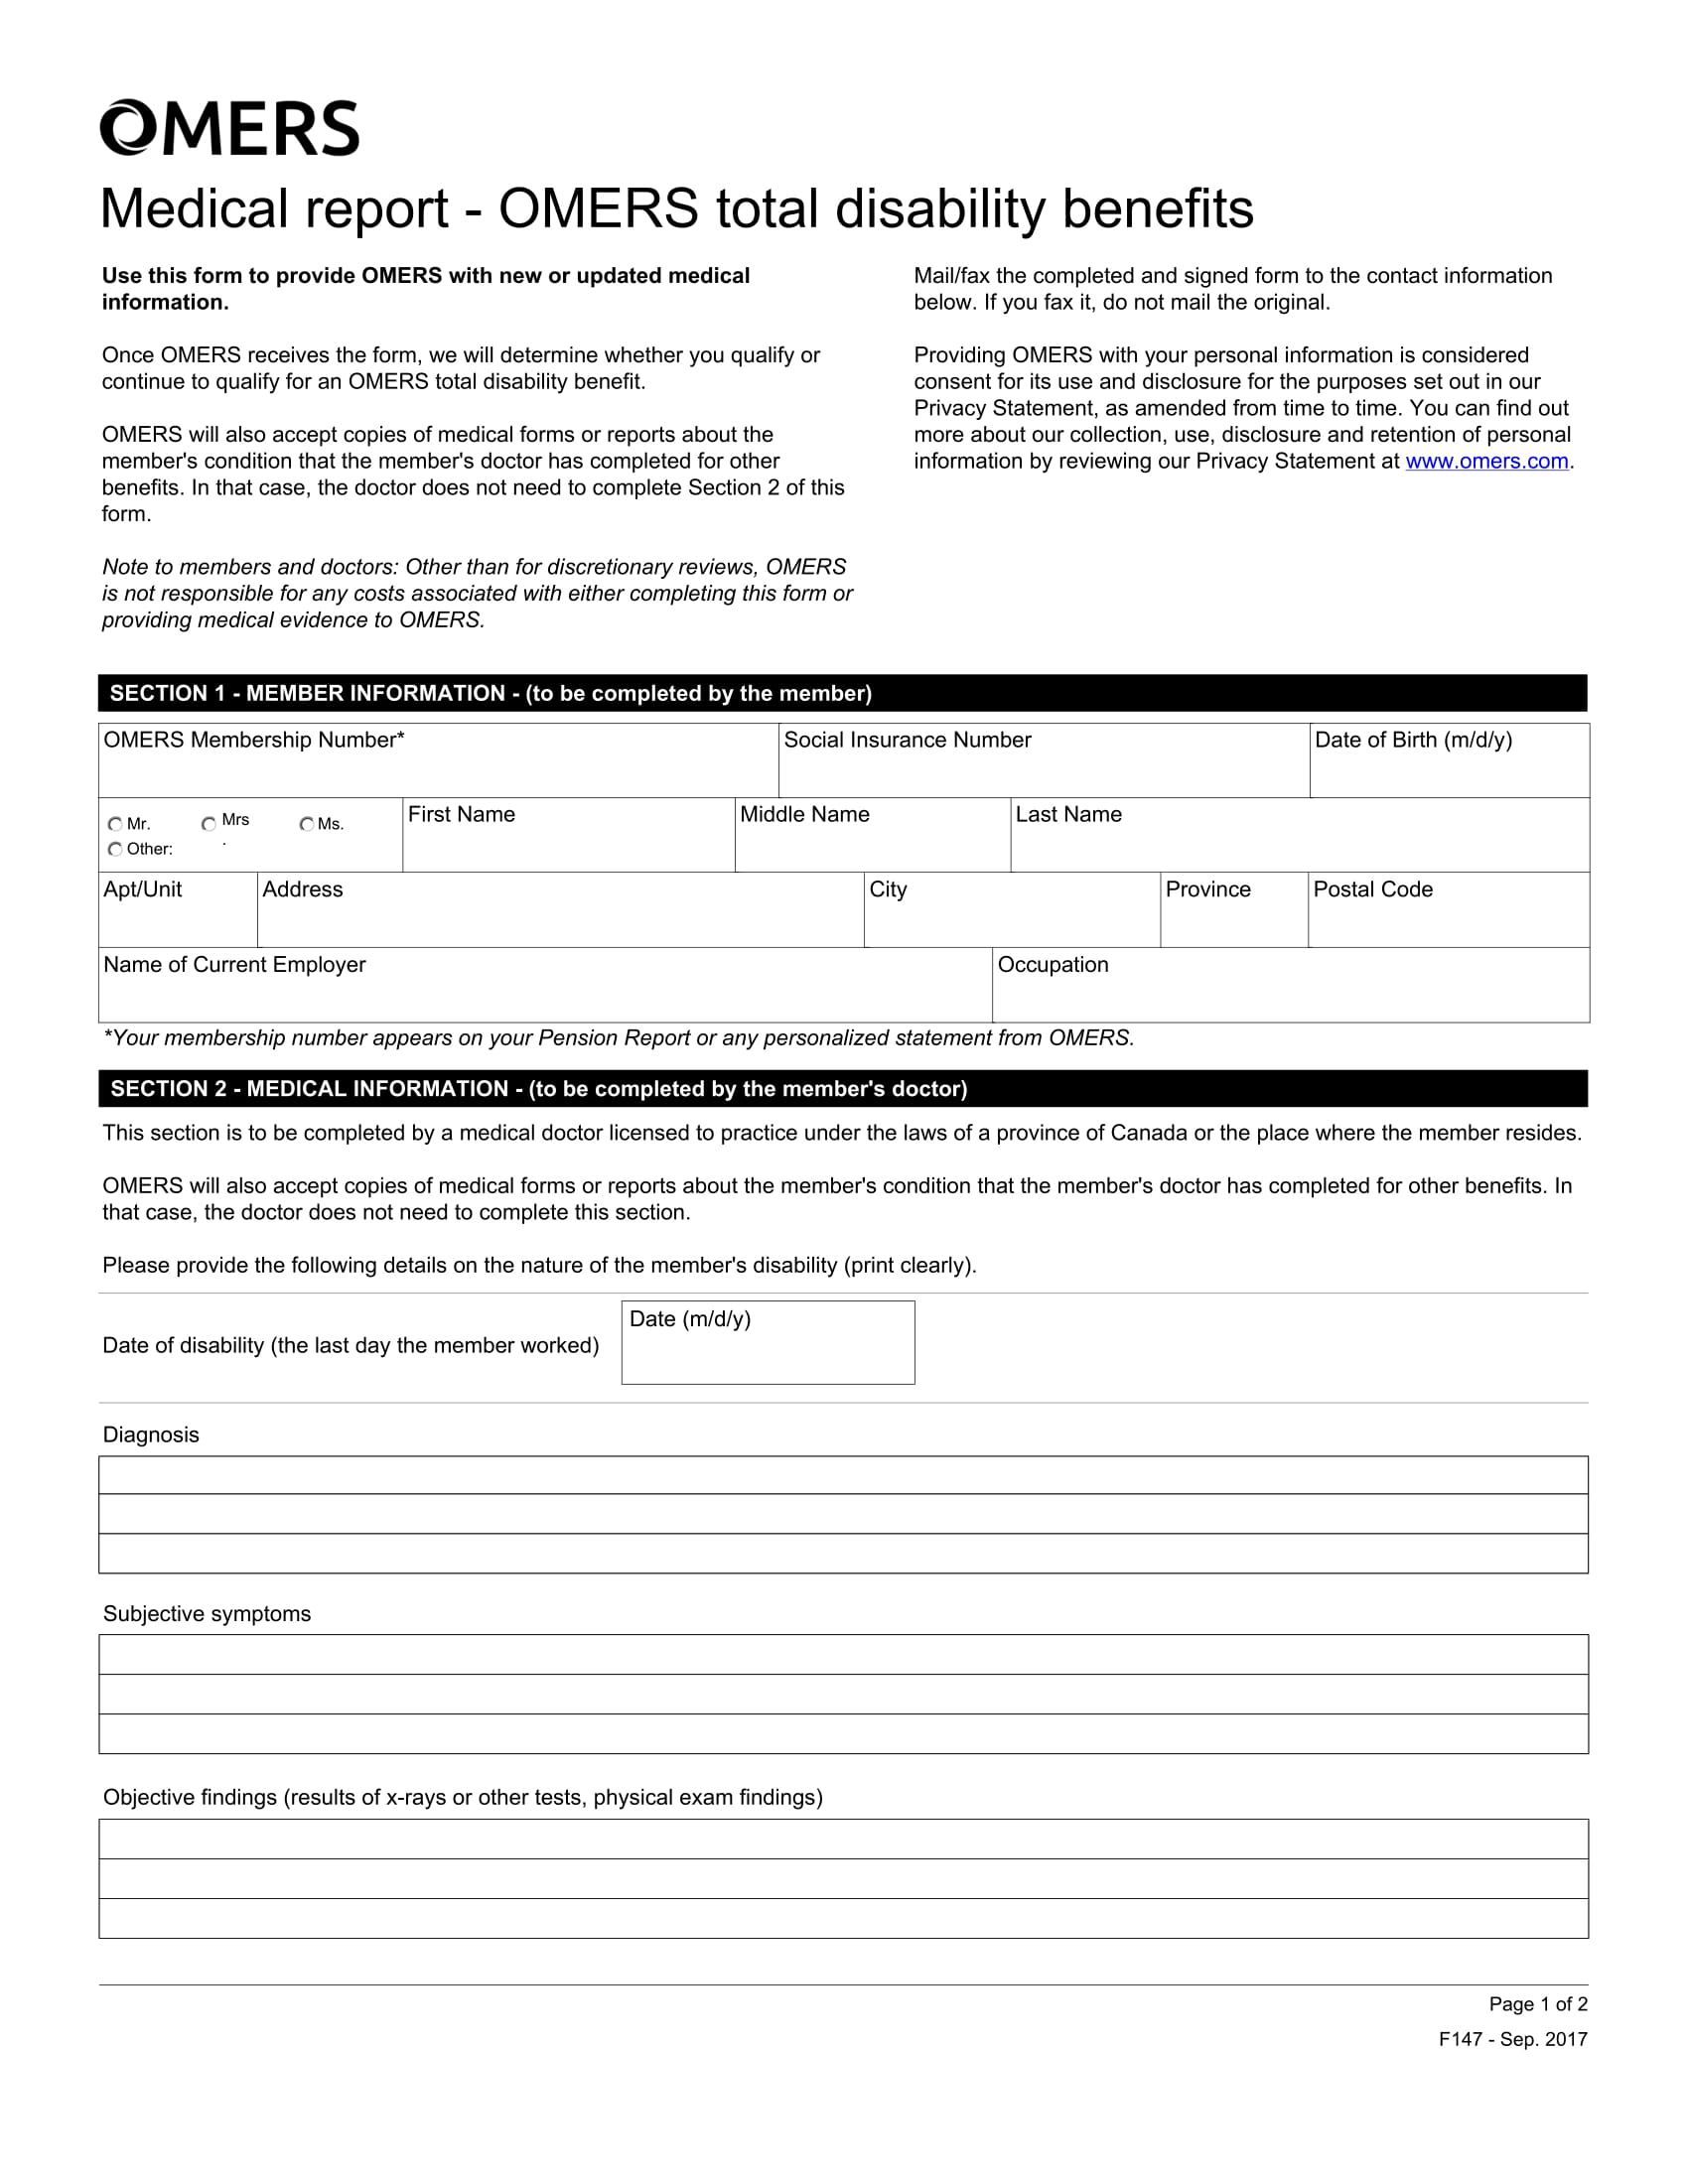 fillable medical disability report form 1